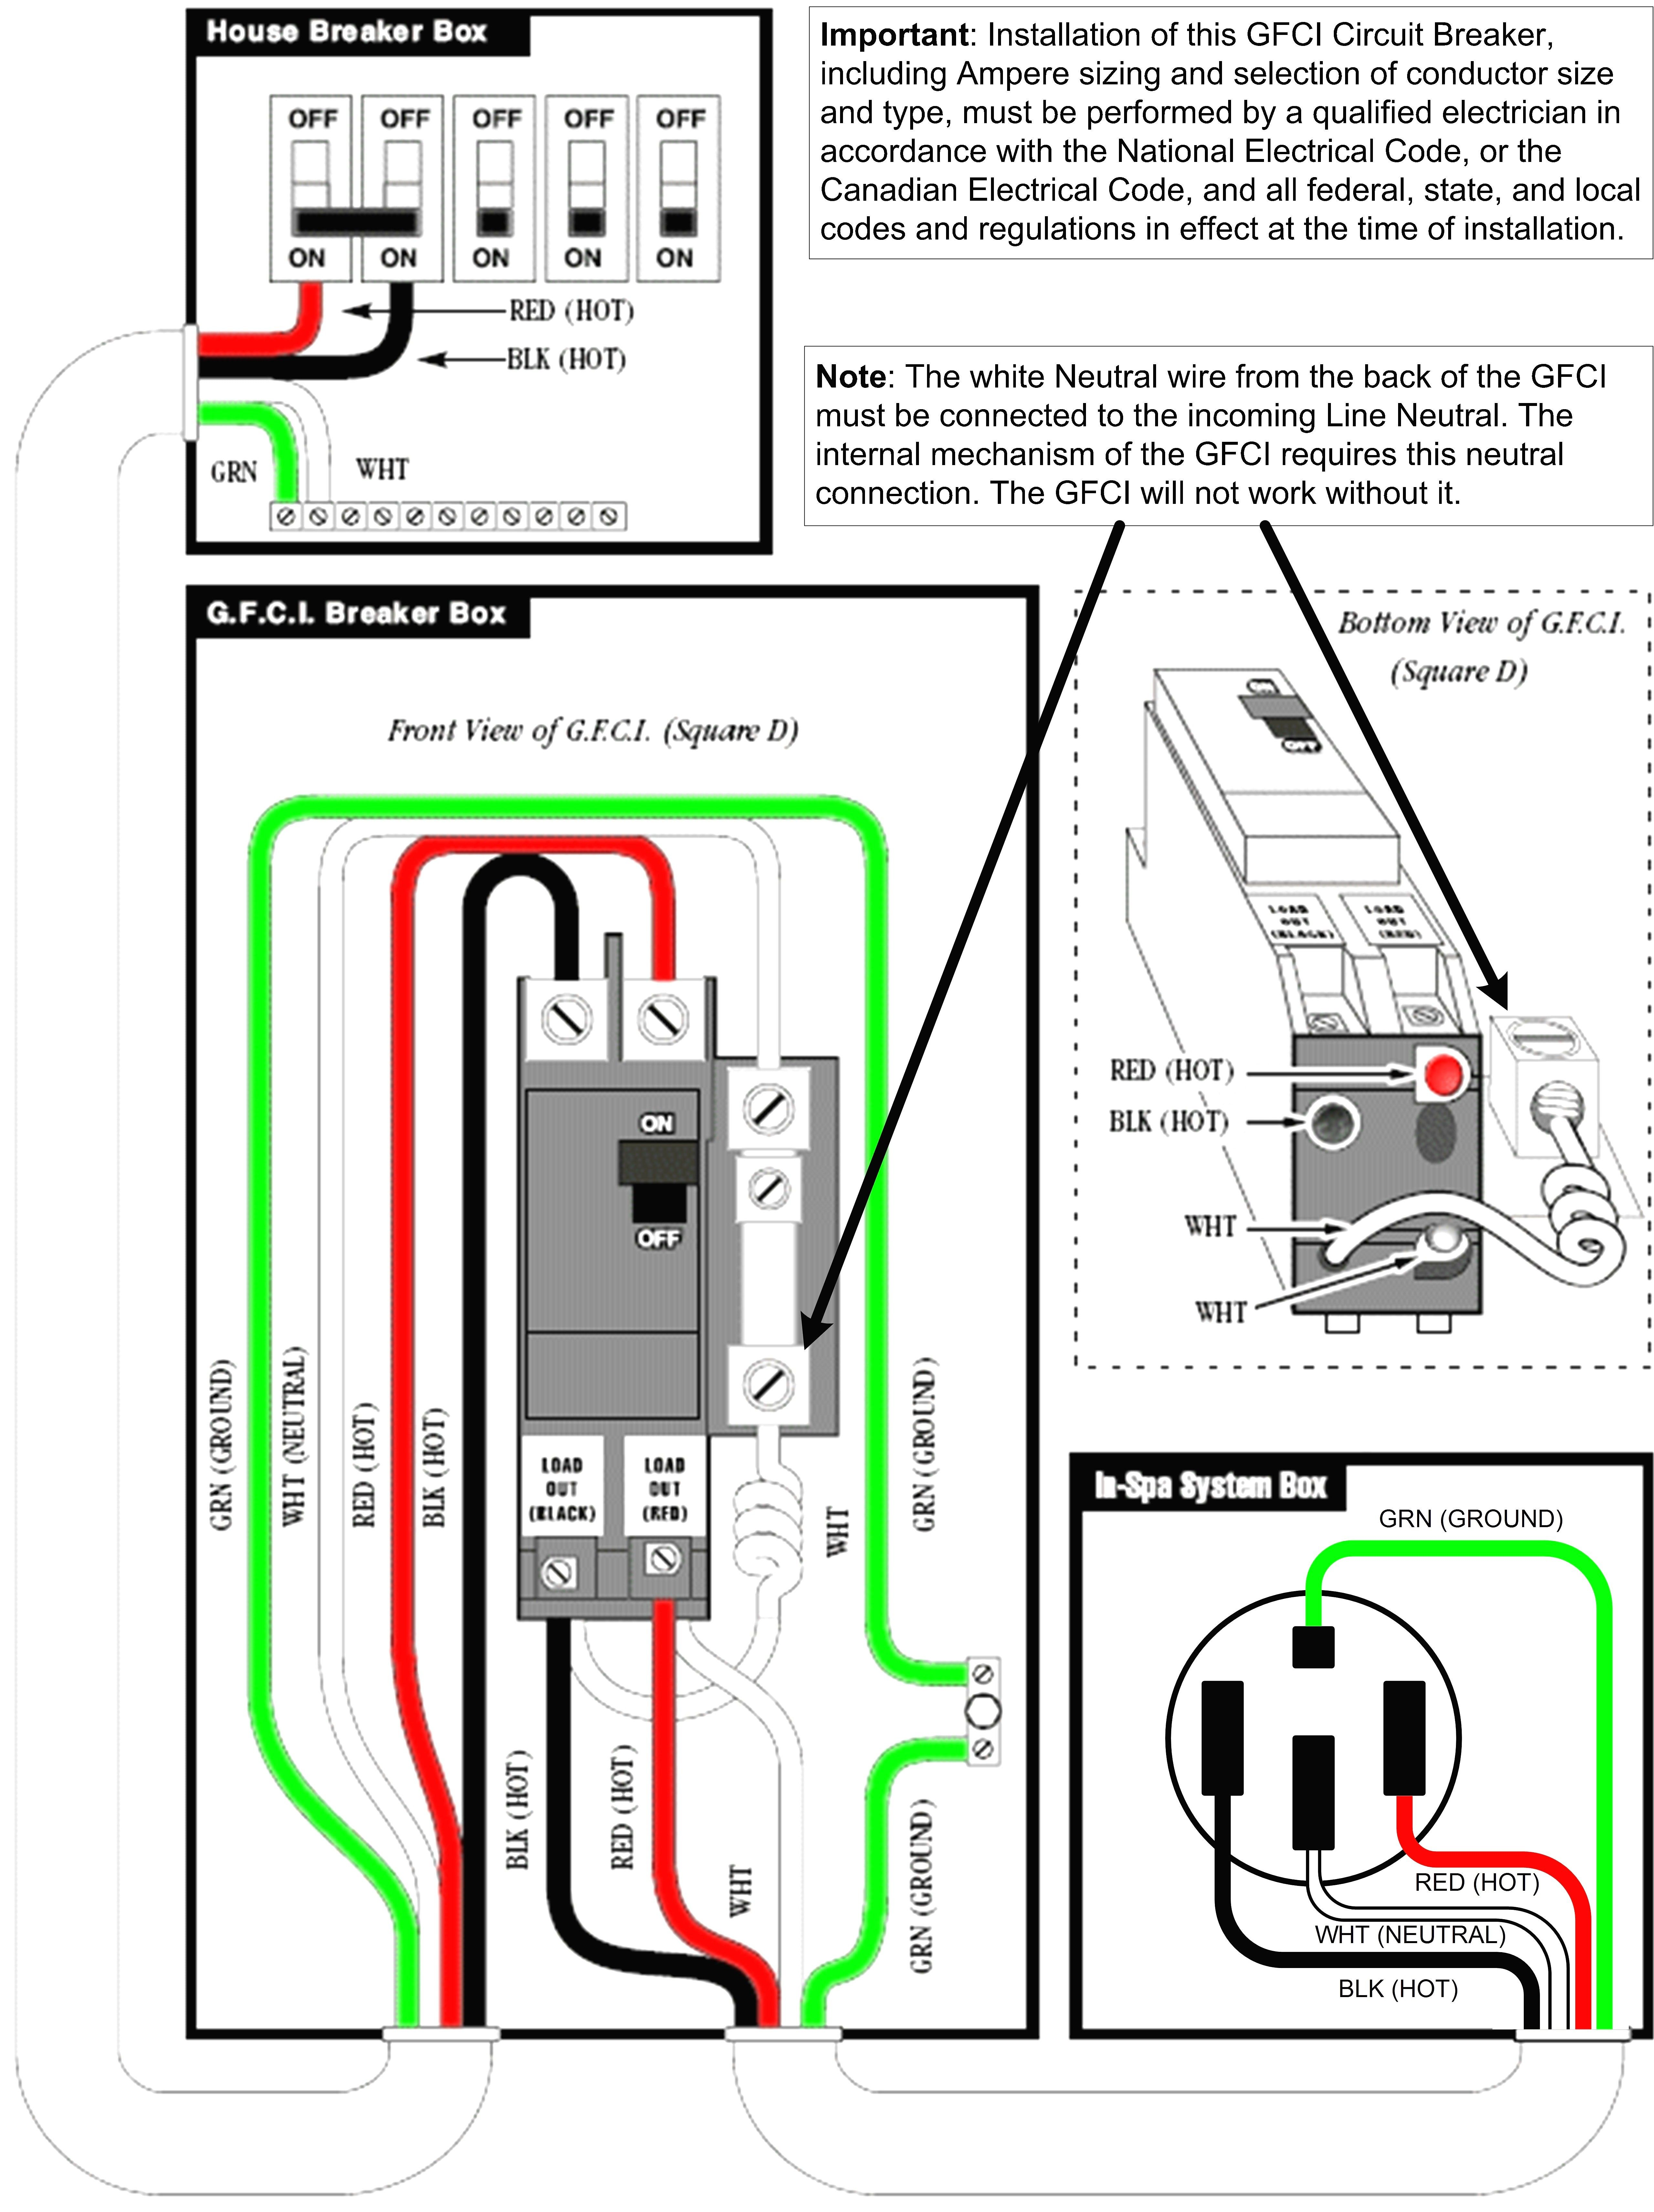 [SCHEMATICS_48IU]  New Gfci Wiring Diagram for Hot Tub #diagram #diagramsample  #diagramtemplate #wiringdiagram #diagramchar… | Electrical panel wiring,  Electrical panel, Outlet wiring | Hot Tub 220 Wiring Diagram |  | Pinterest